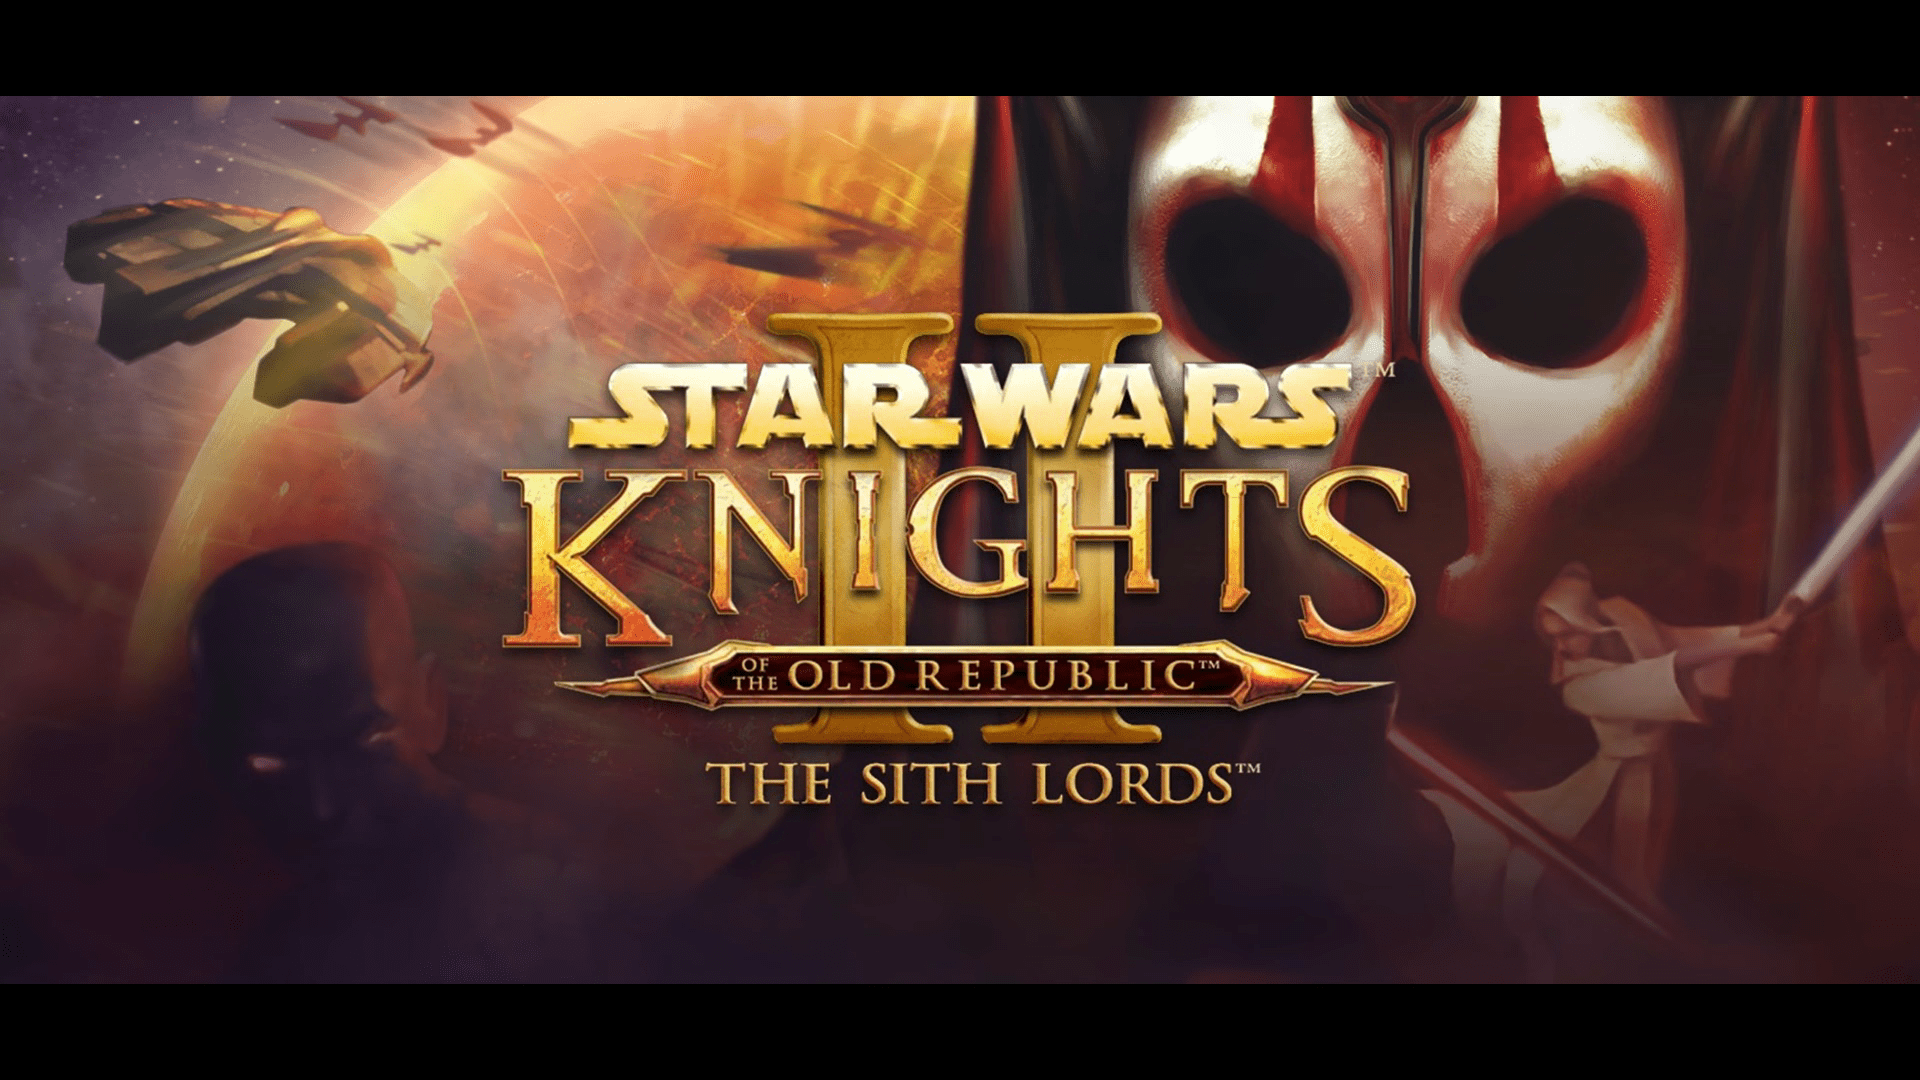 Kotor 2 1080p Posted By John Thompson